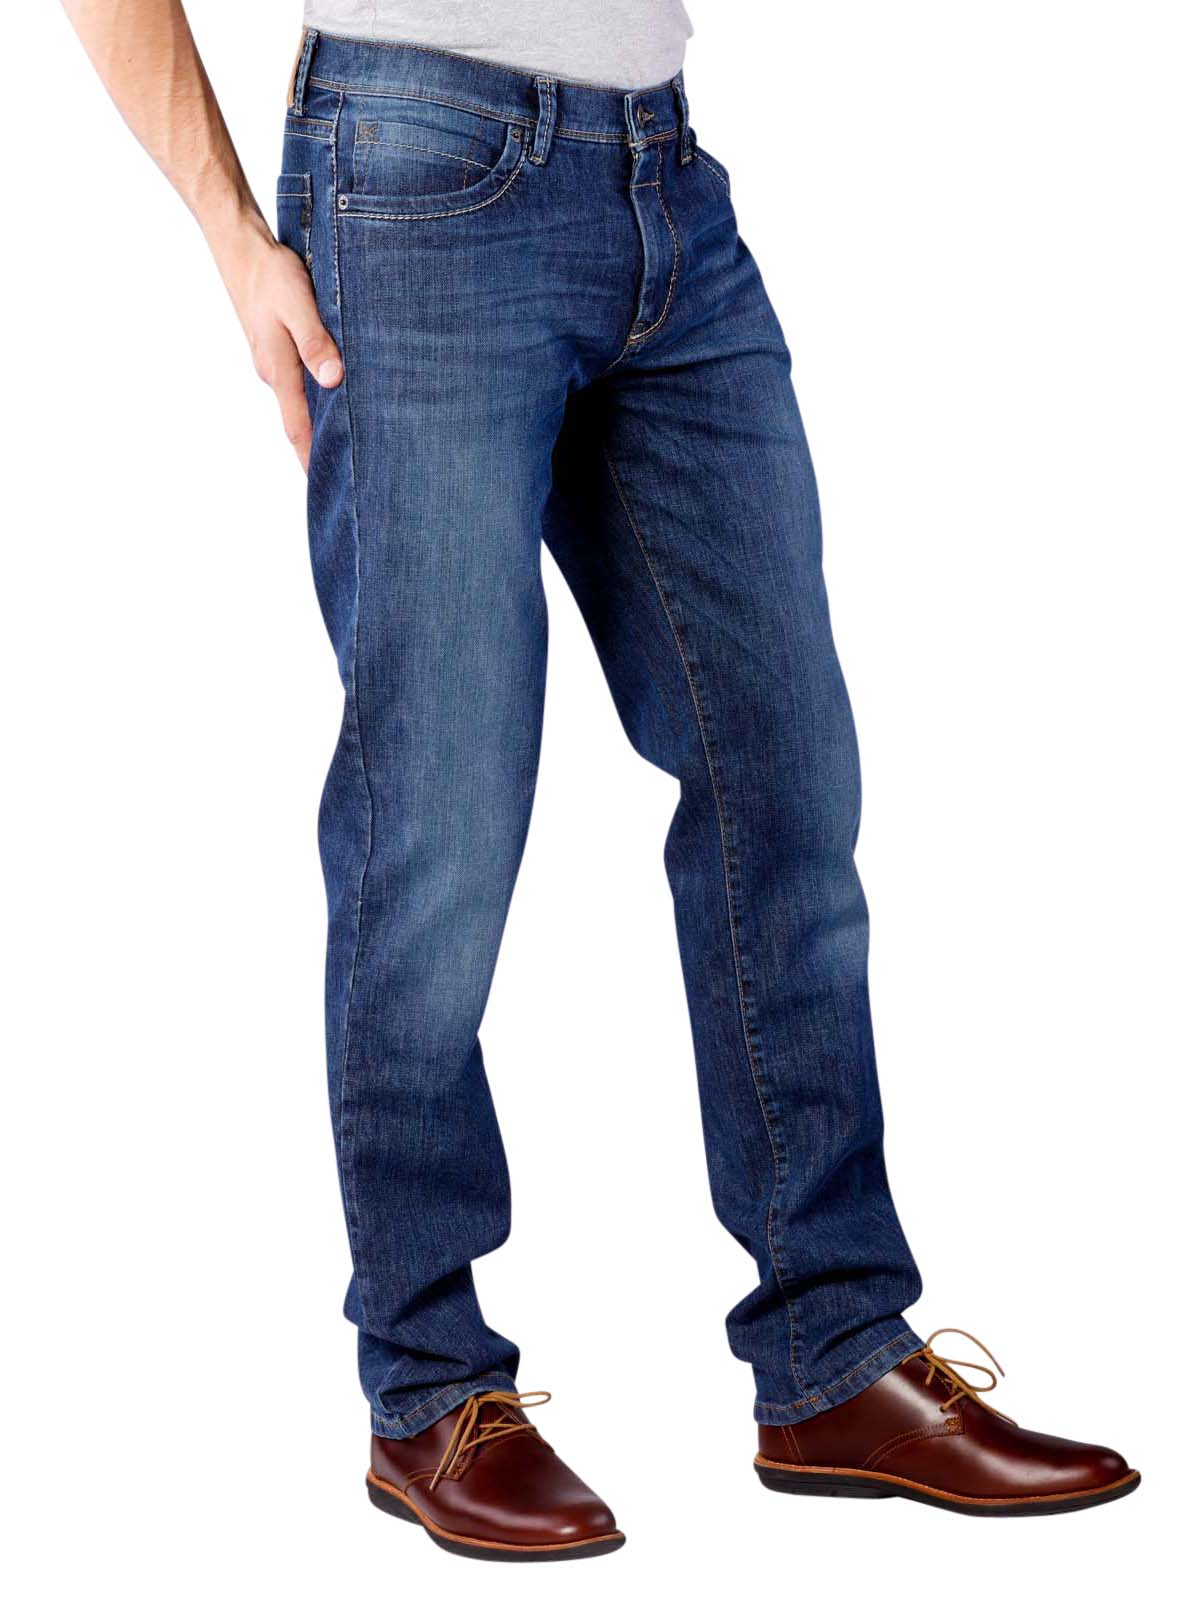 new arrivals the sale of shoes biggest discount Brax Cadiz Jeans sea water